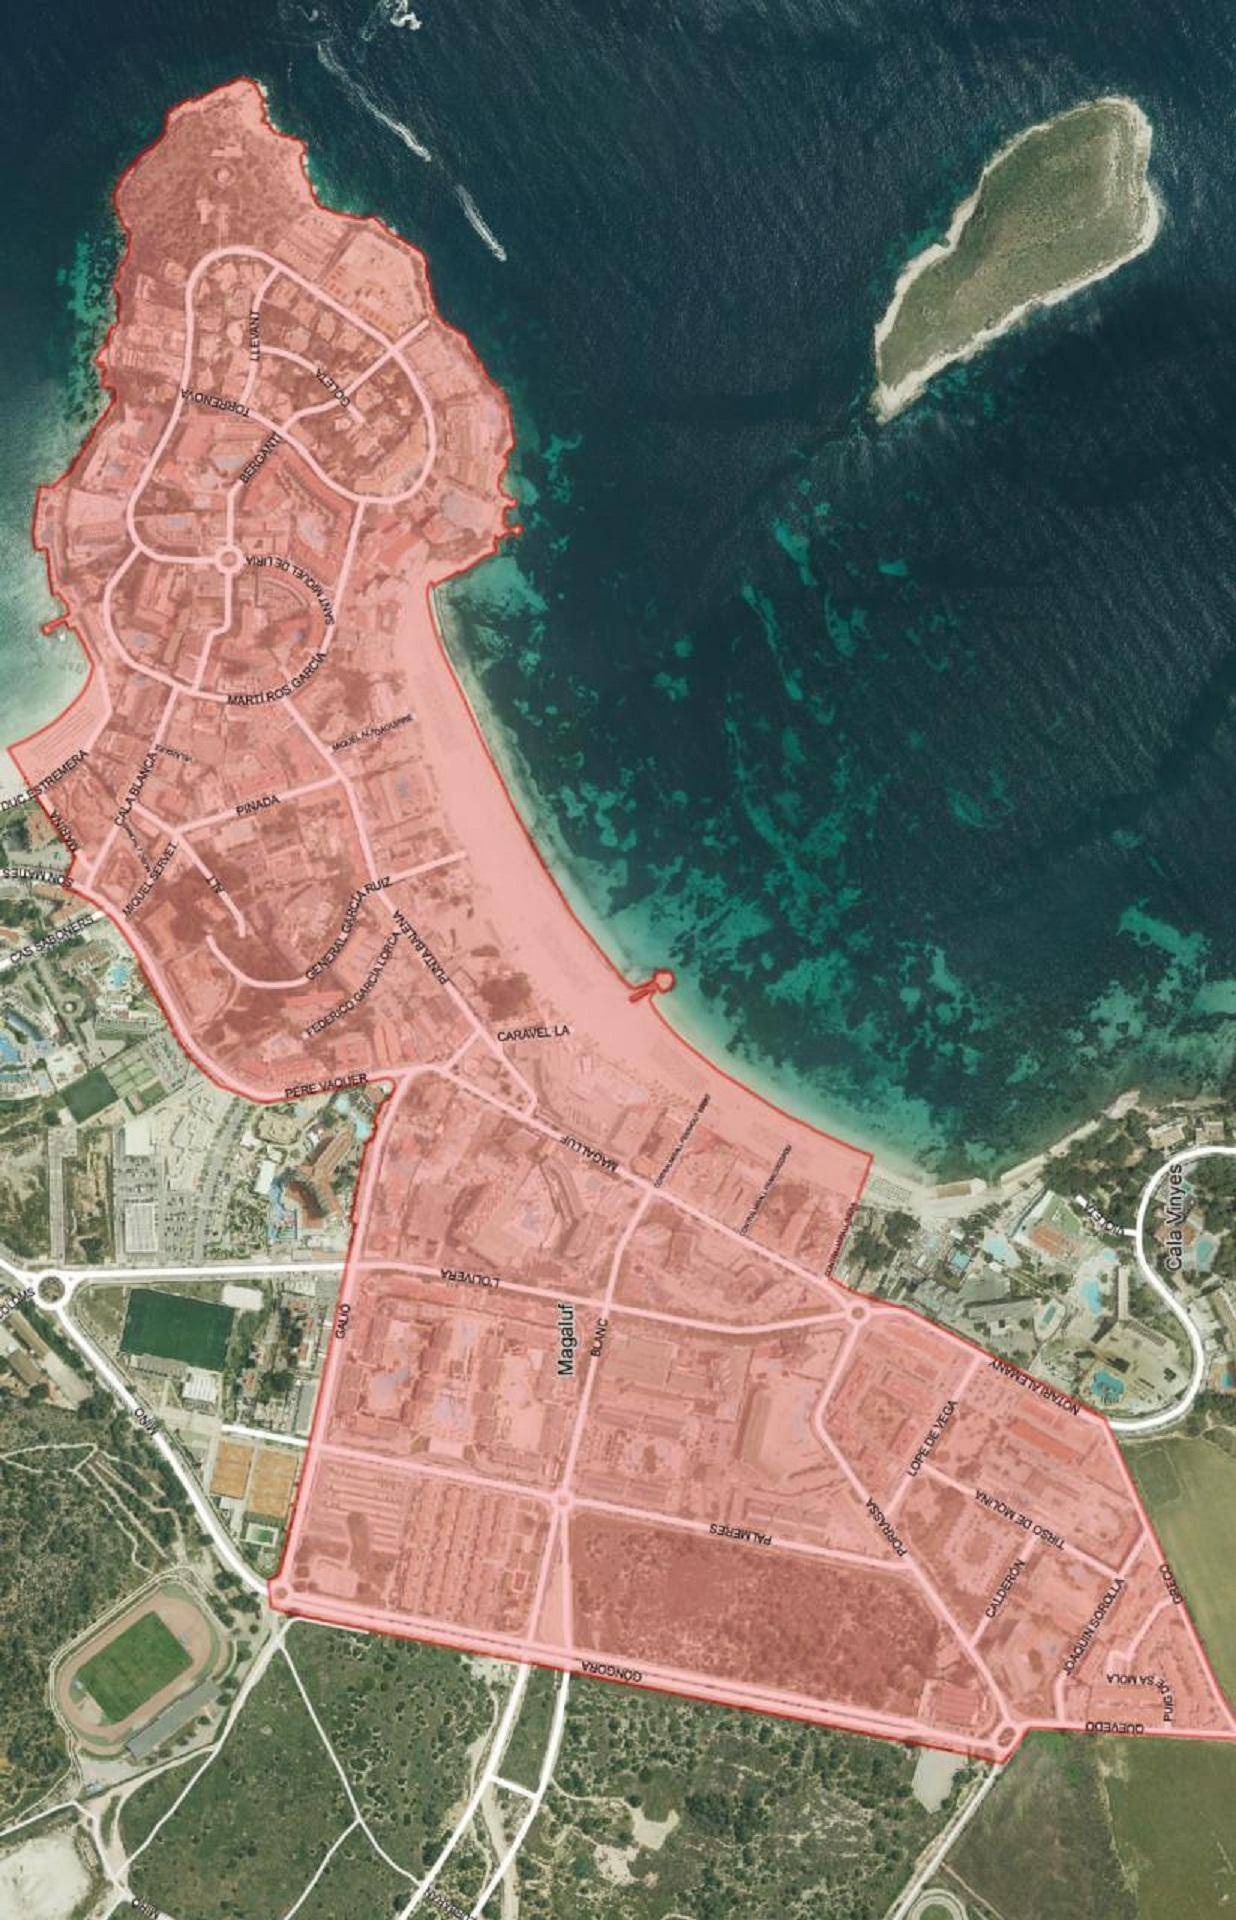 The area of Magaluf to be affected by the new law